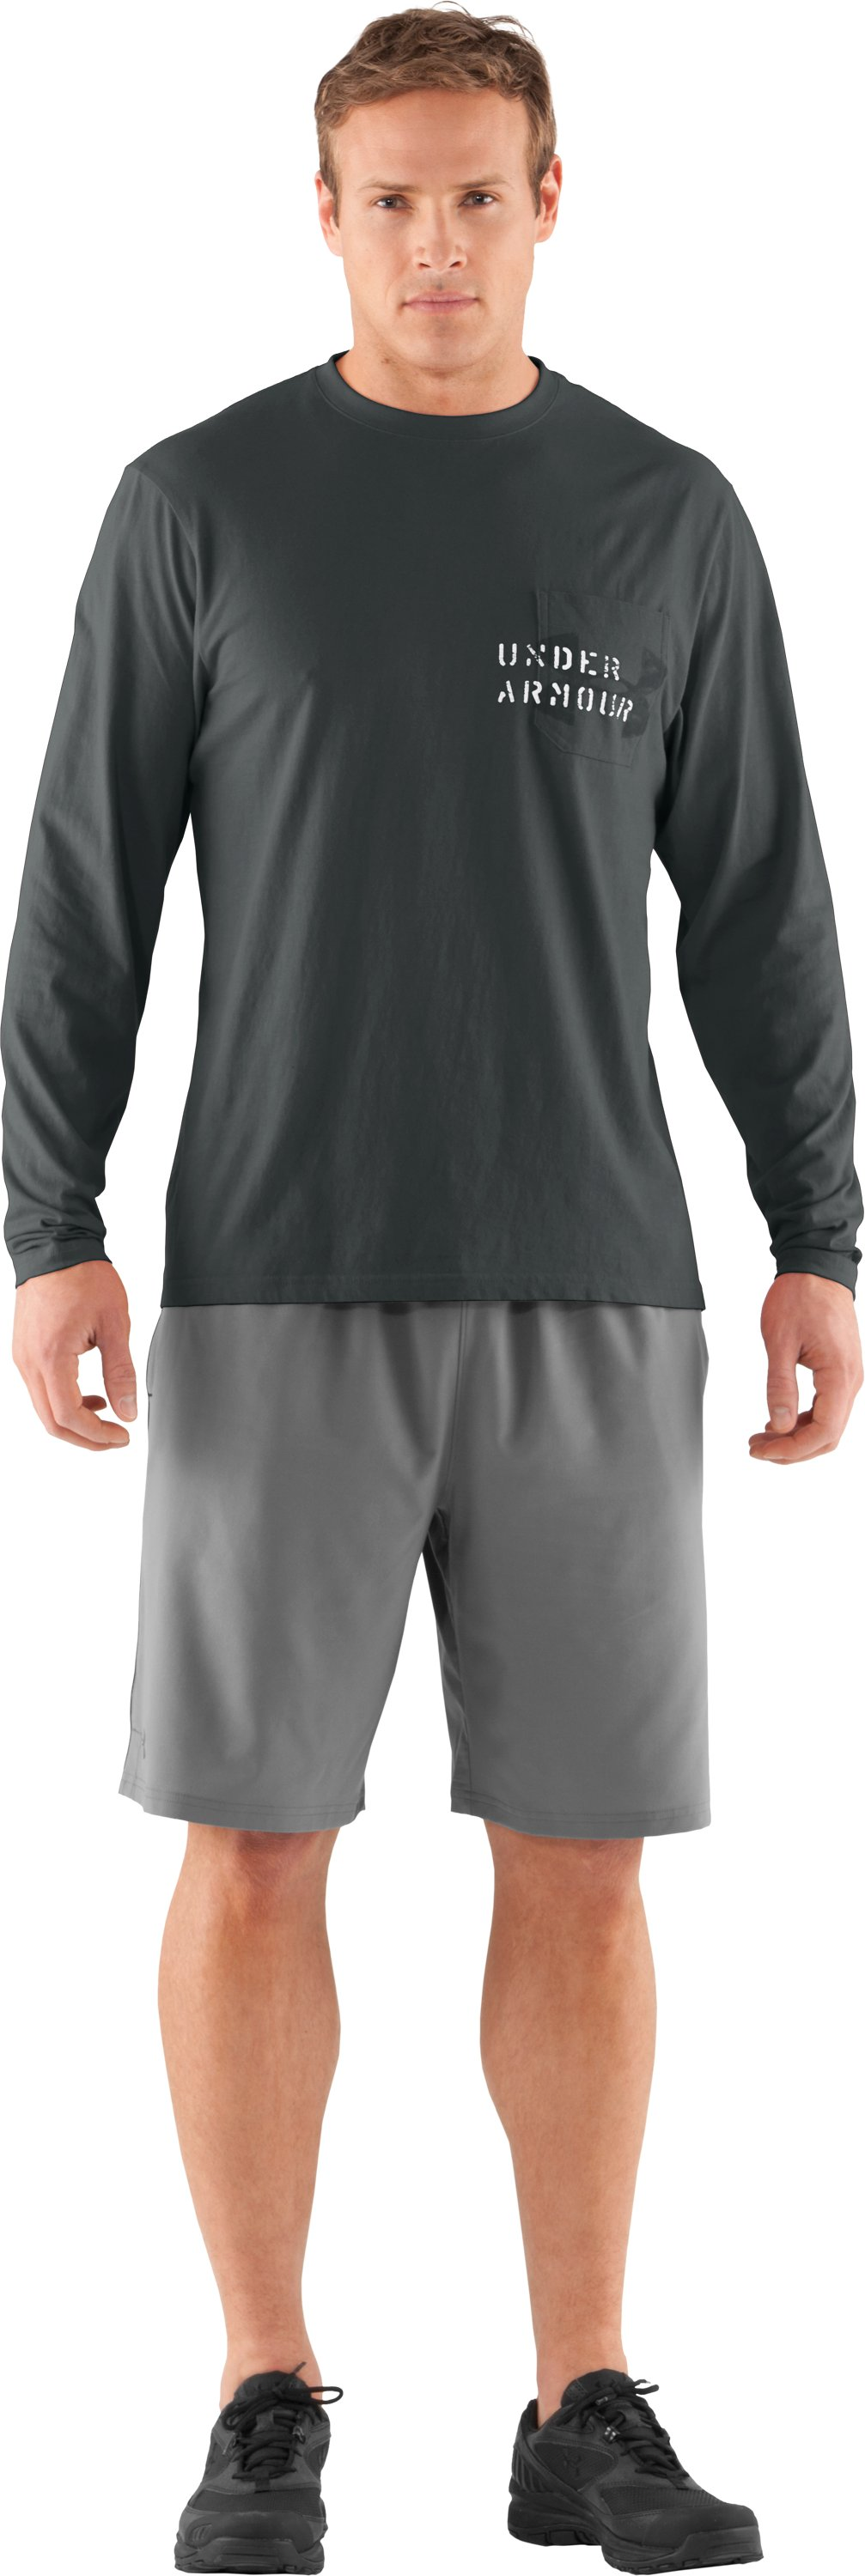 Men's Charged Cotton® Pocket Long Sleeve T-Shirt, Battleship